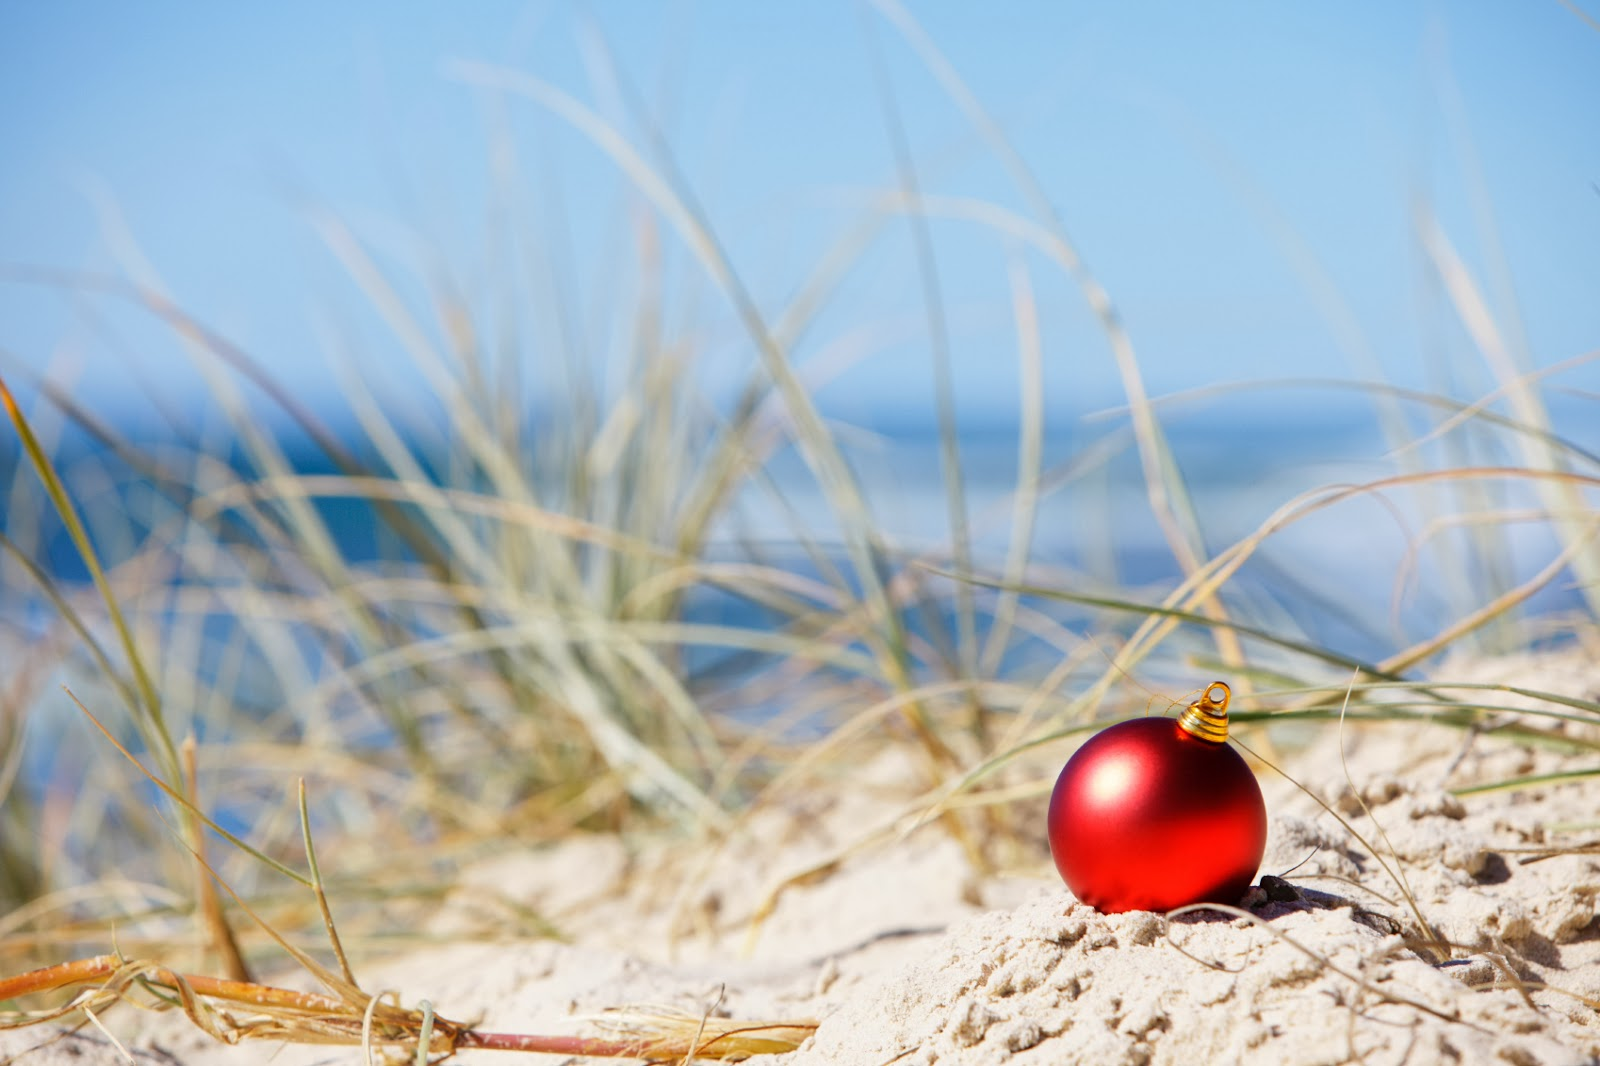 Thomas beach vacations what 39 s happening in december on for Tropical getaways in december